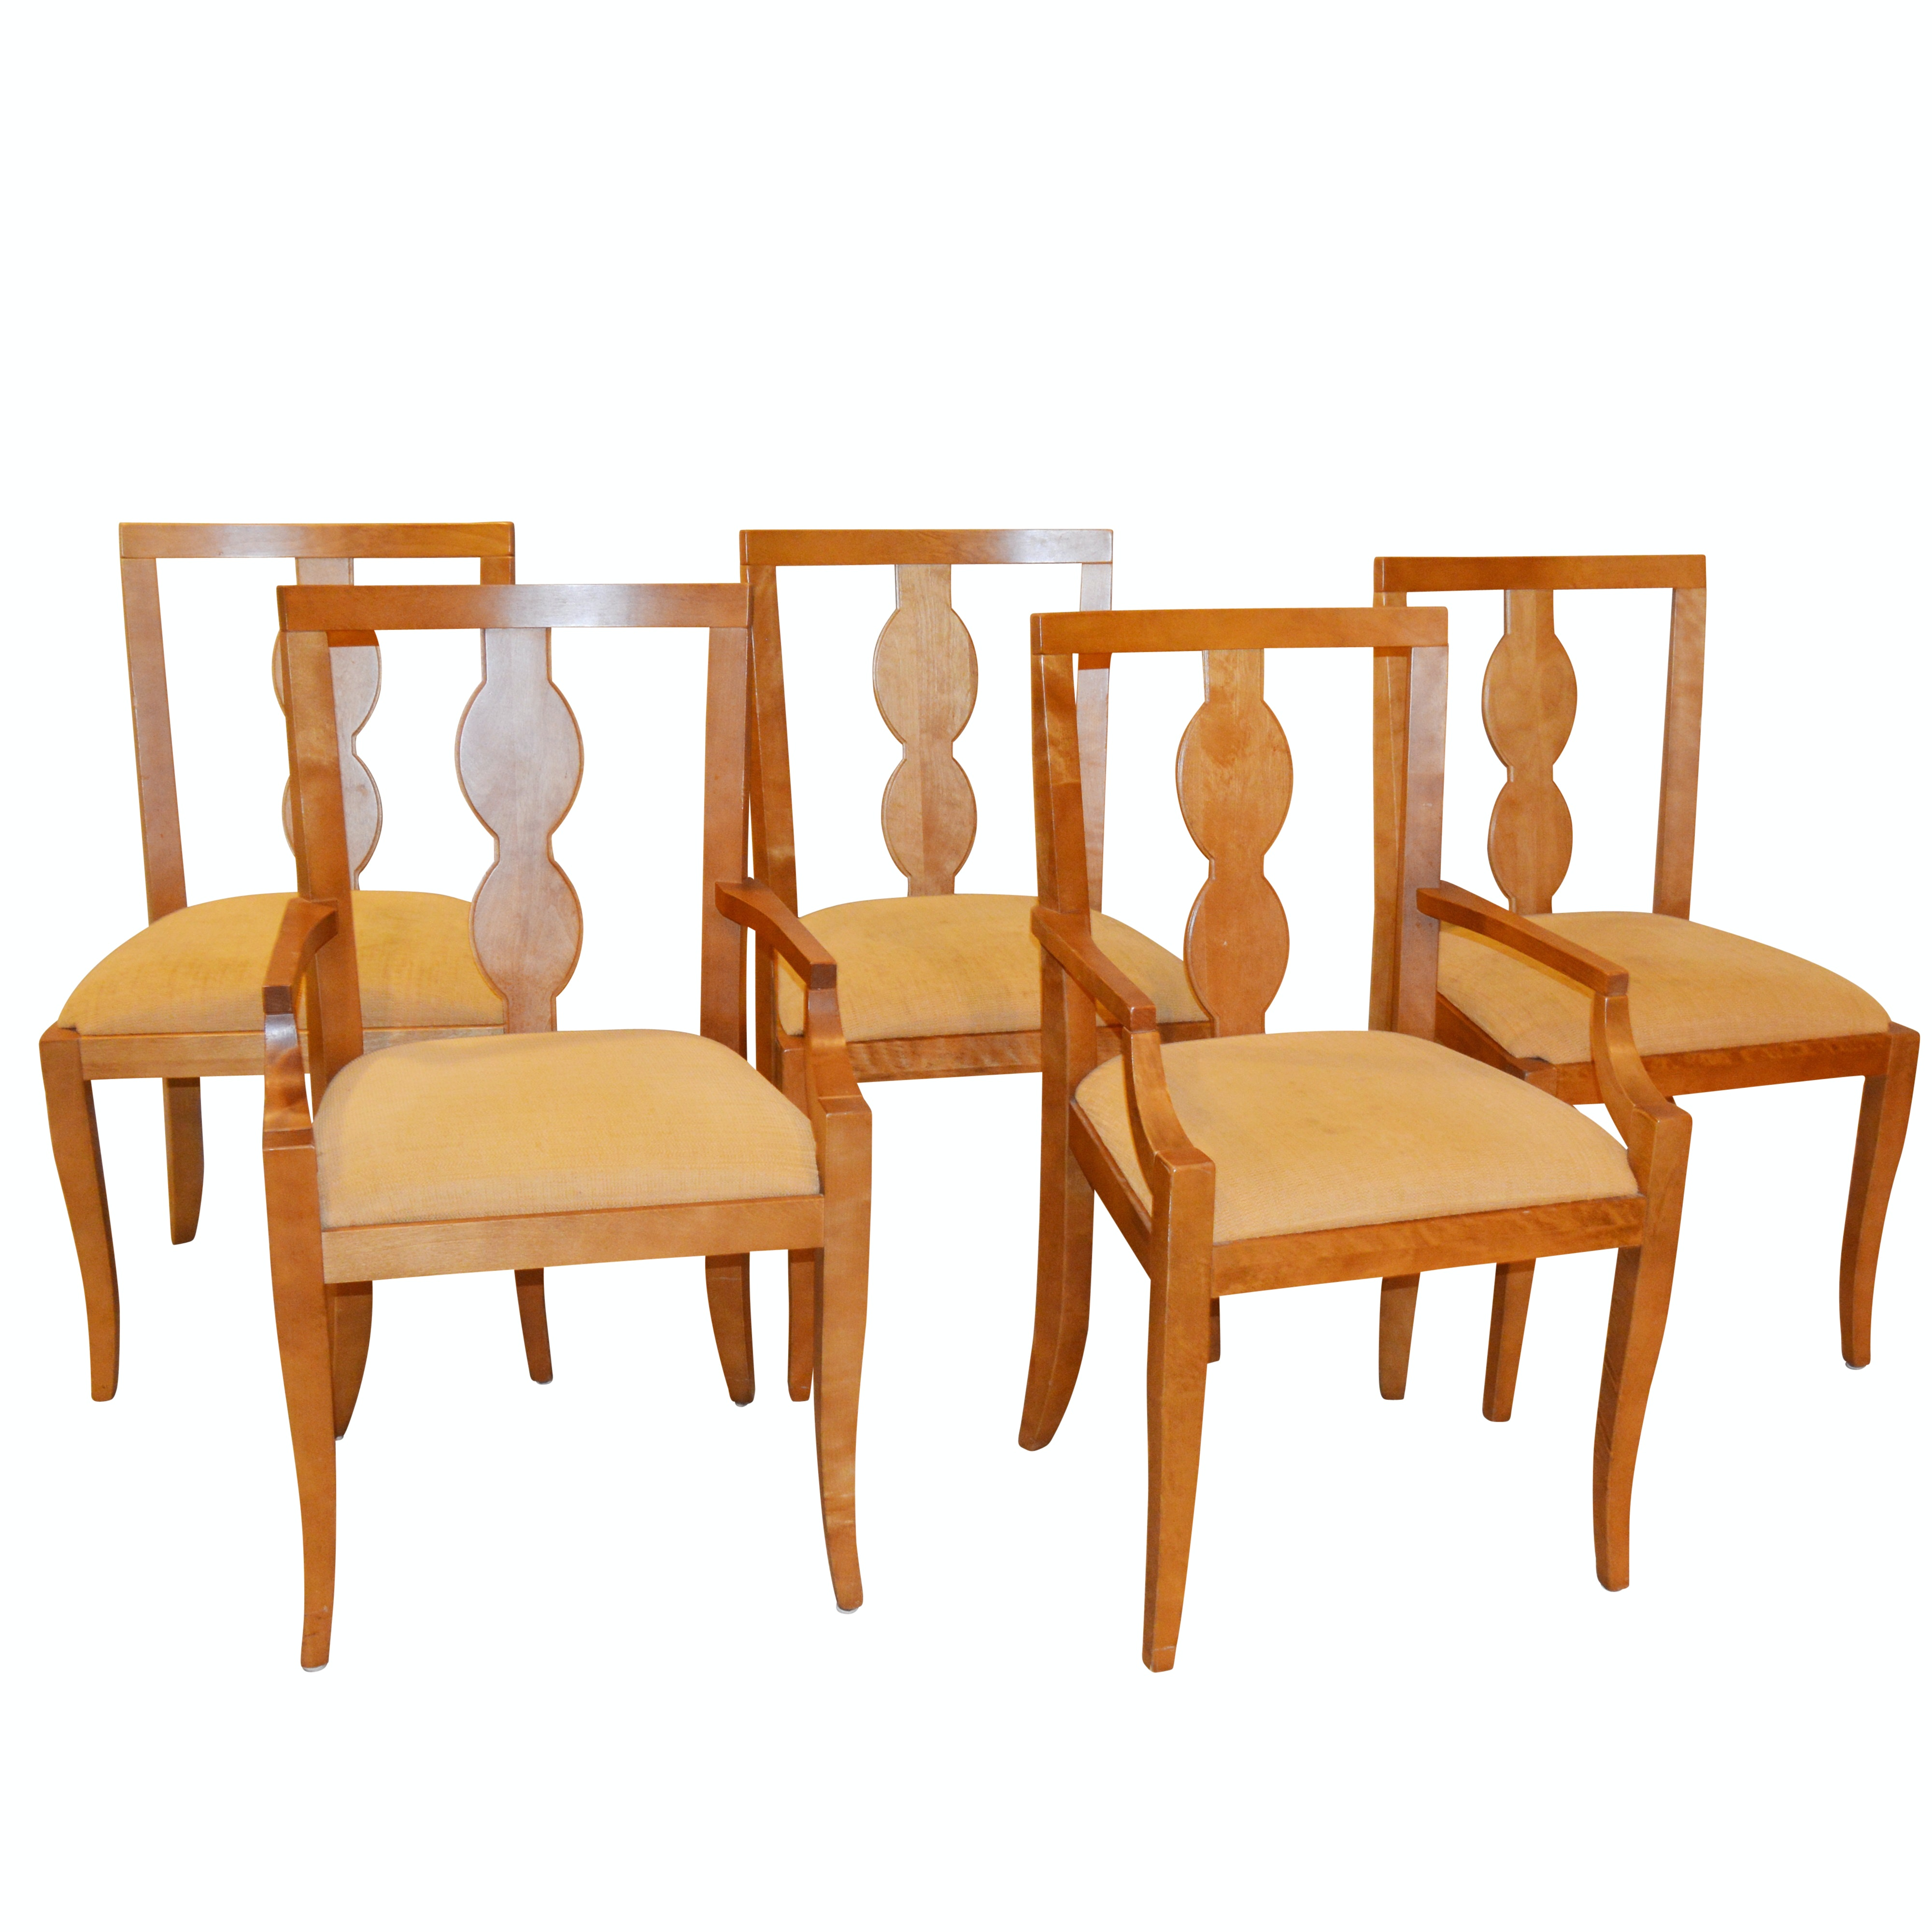 Maple Splat Back Dining Chairs with Upholstered Seats, Late 20th Century